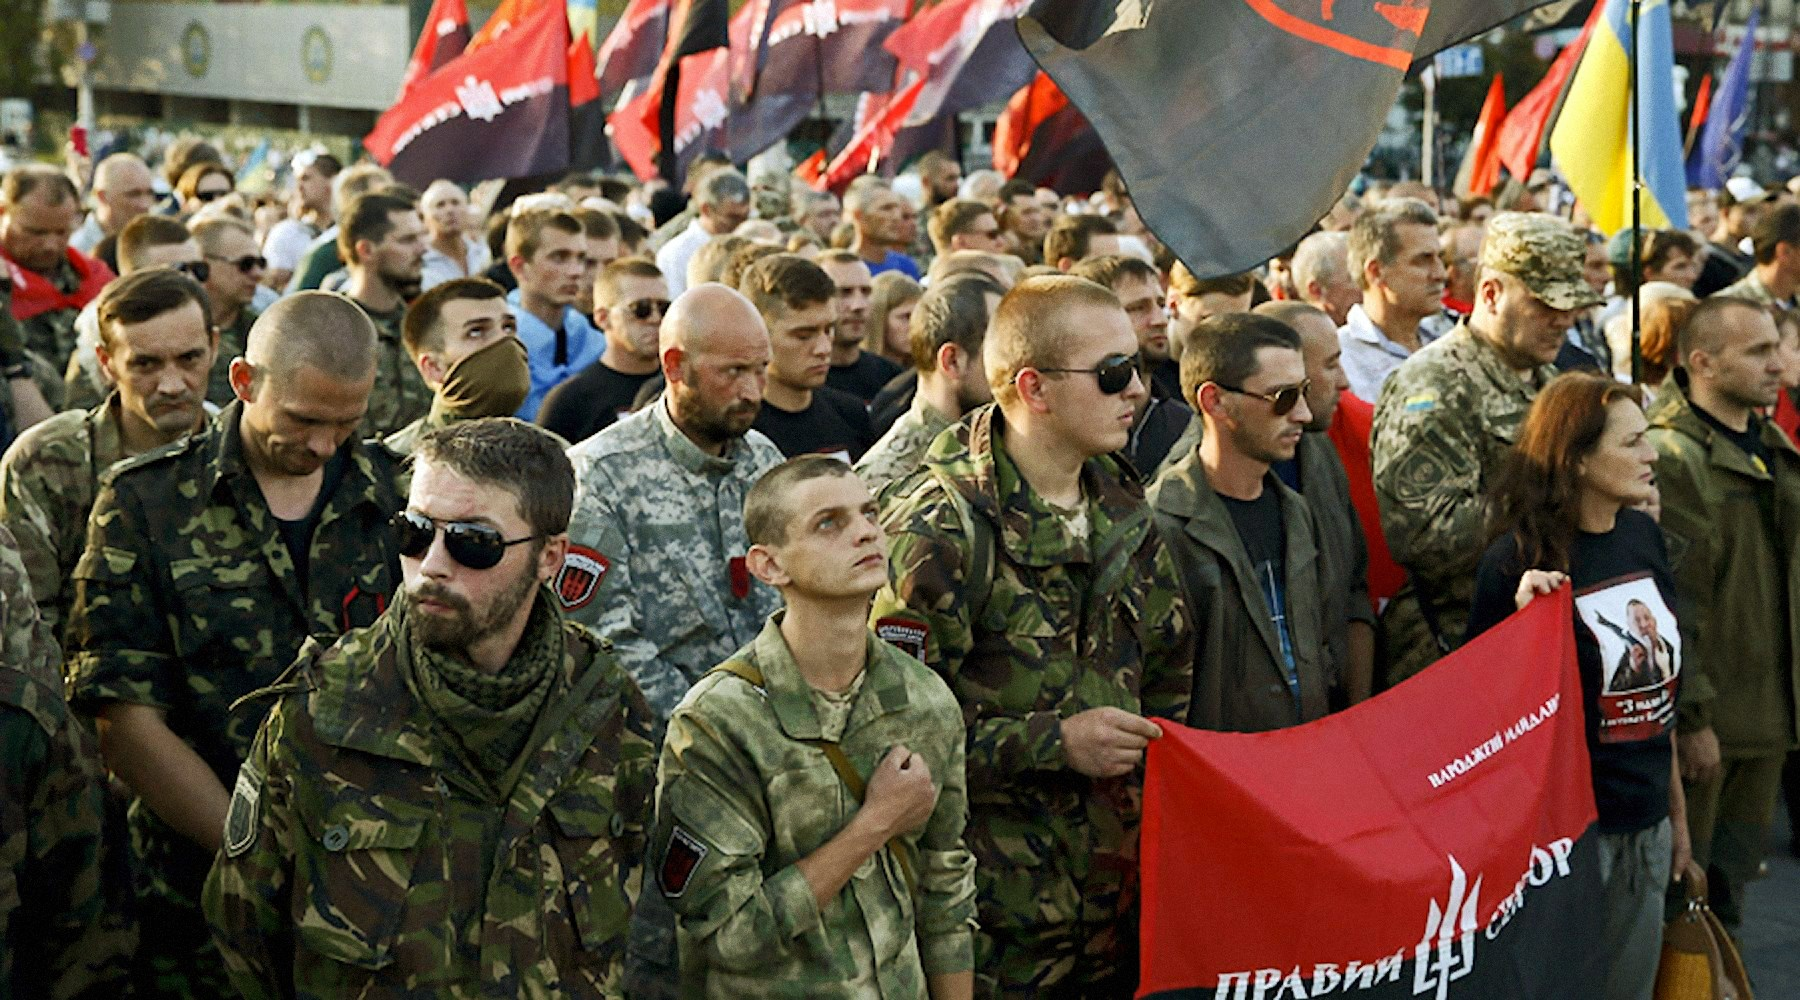 00 right sector pigs on the Maidan. 210715